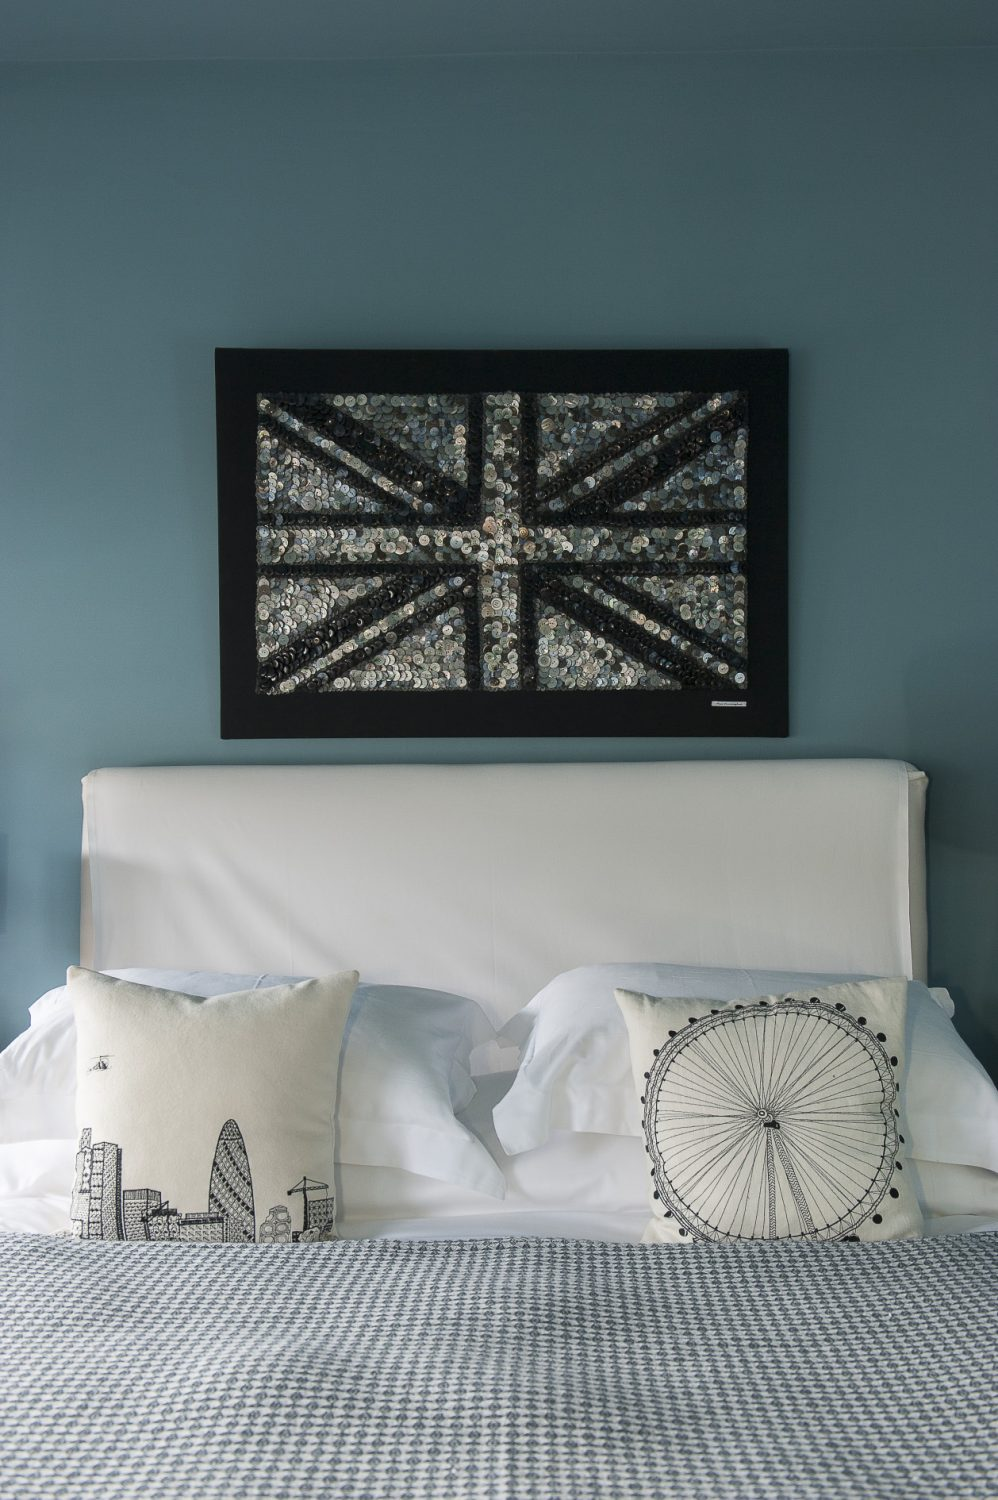 An Ann Carrington original, this time of a Union Jack, hangs above the bed.